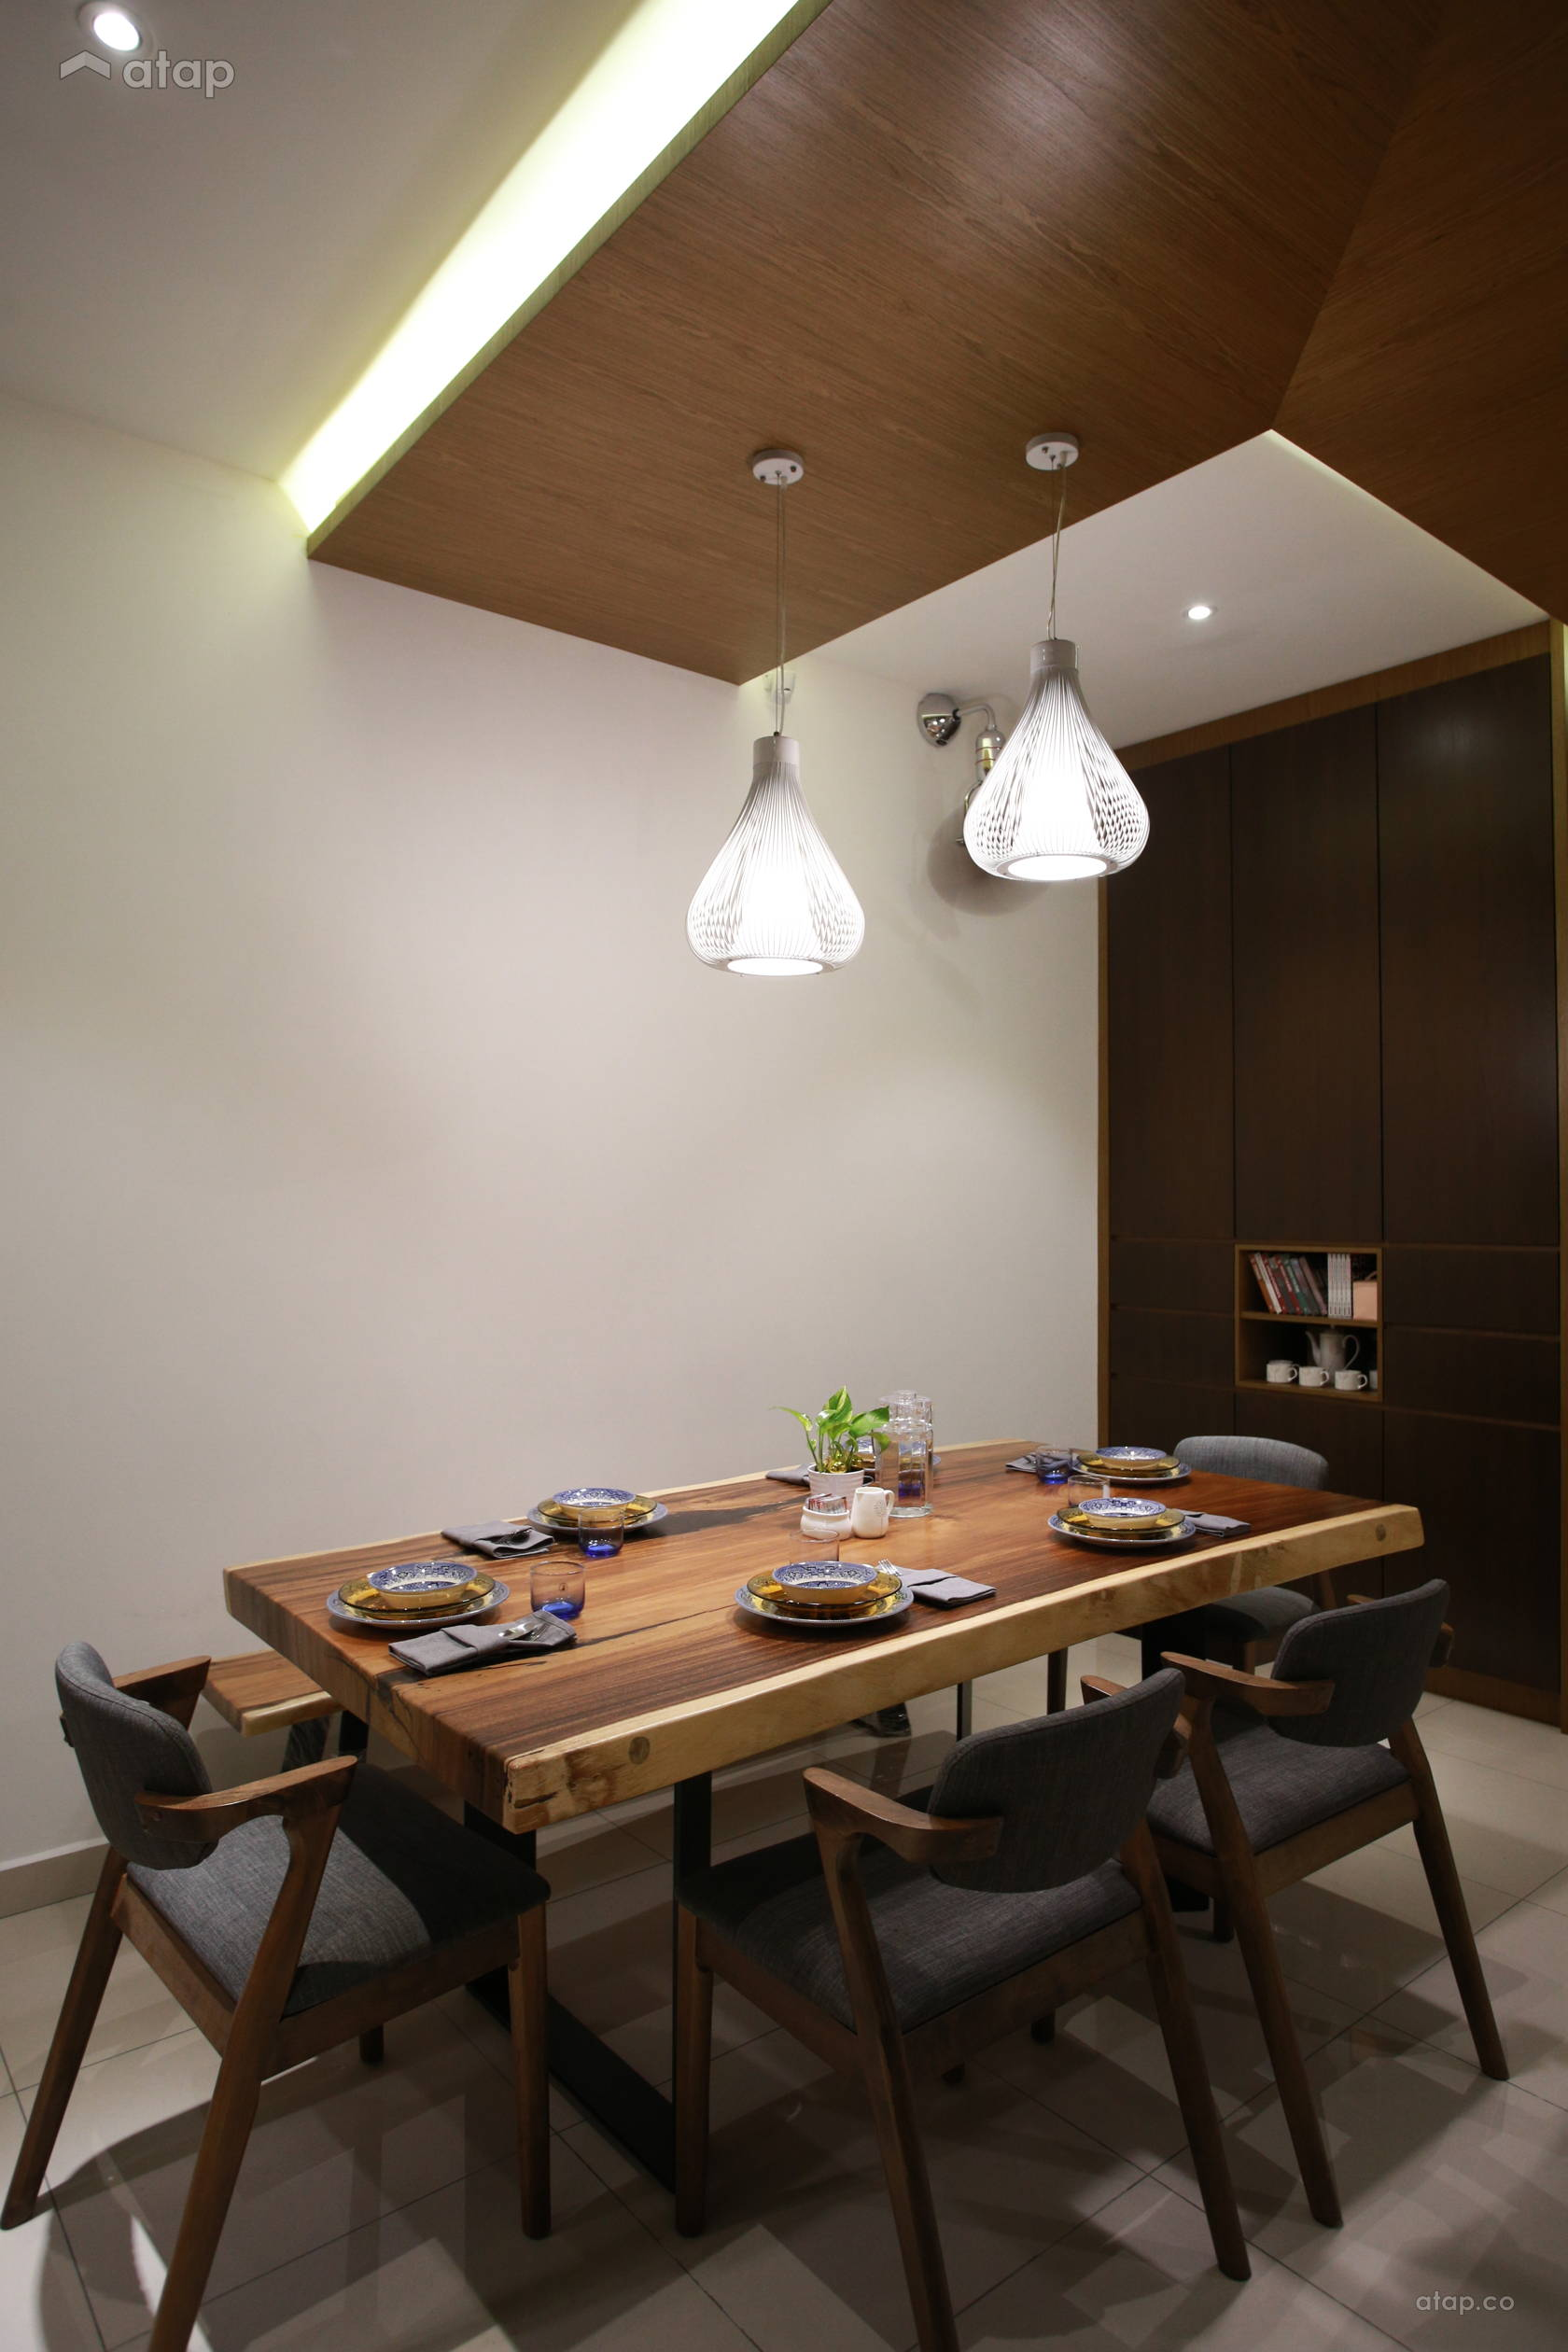 Minimalistic Modern Dining Room @ Terrace House - Kepong Baru